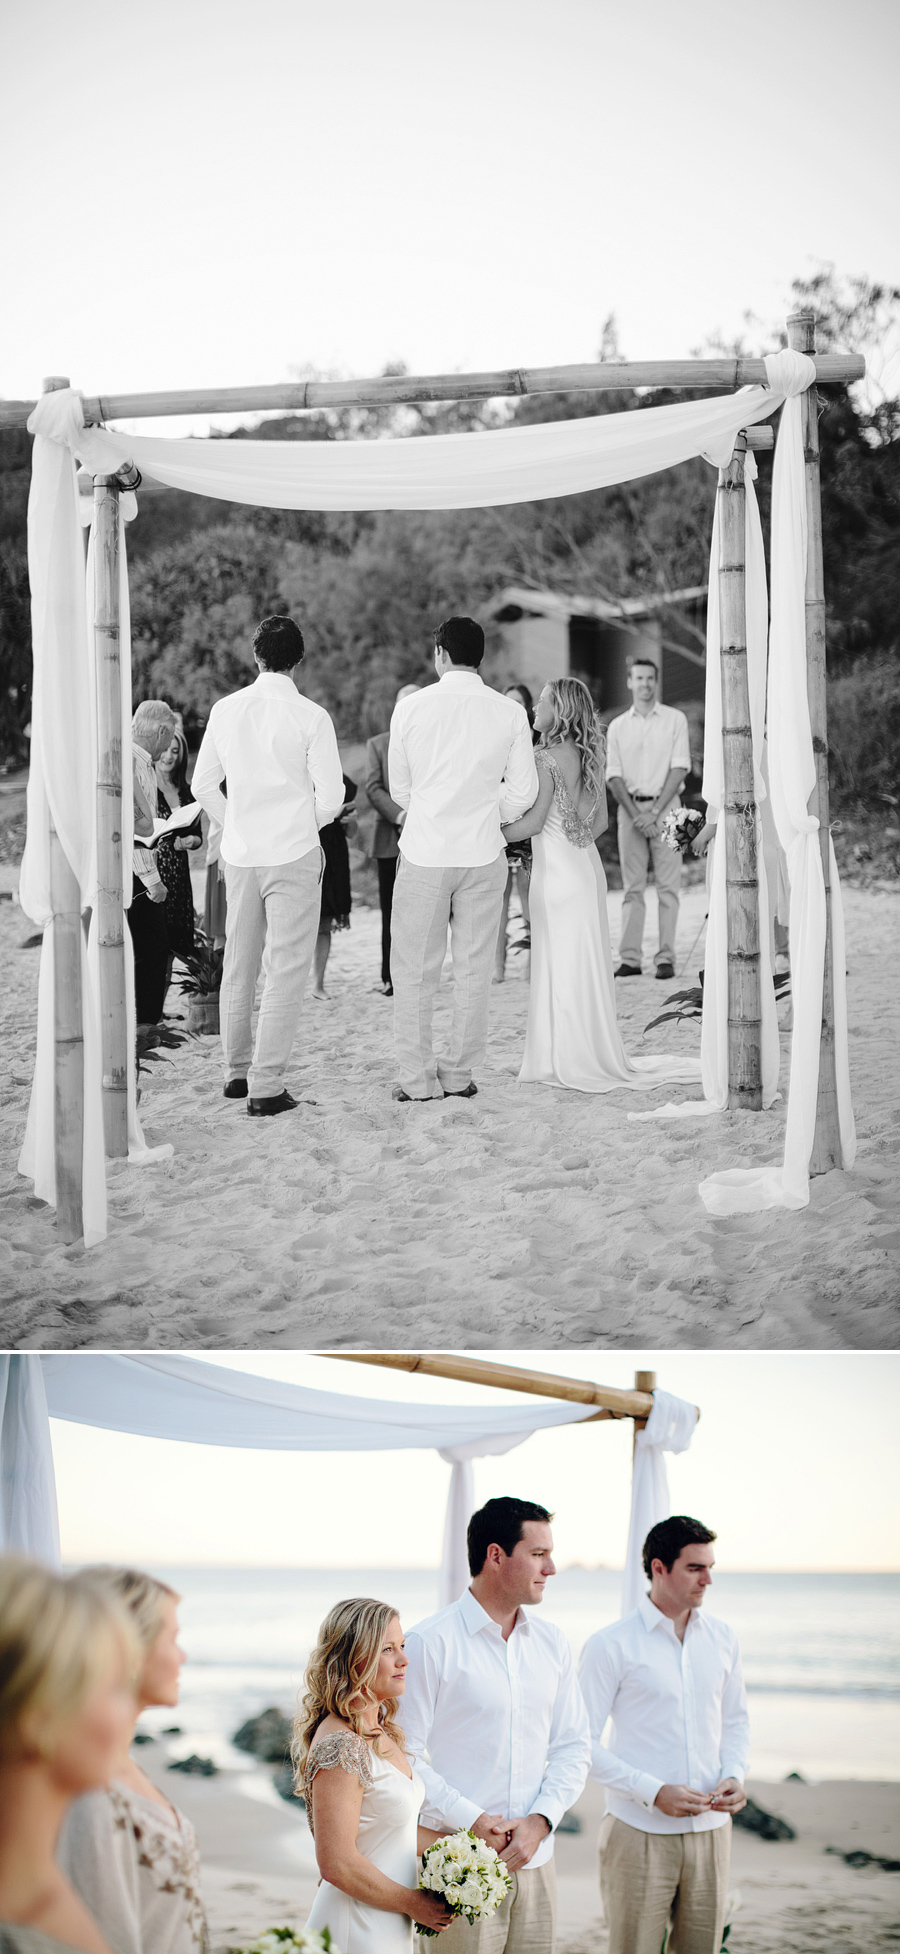 Wategos Wedding Photography: Beach sunrise ceremony